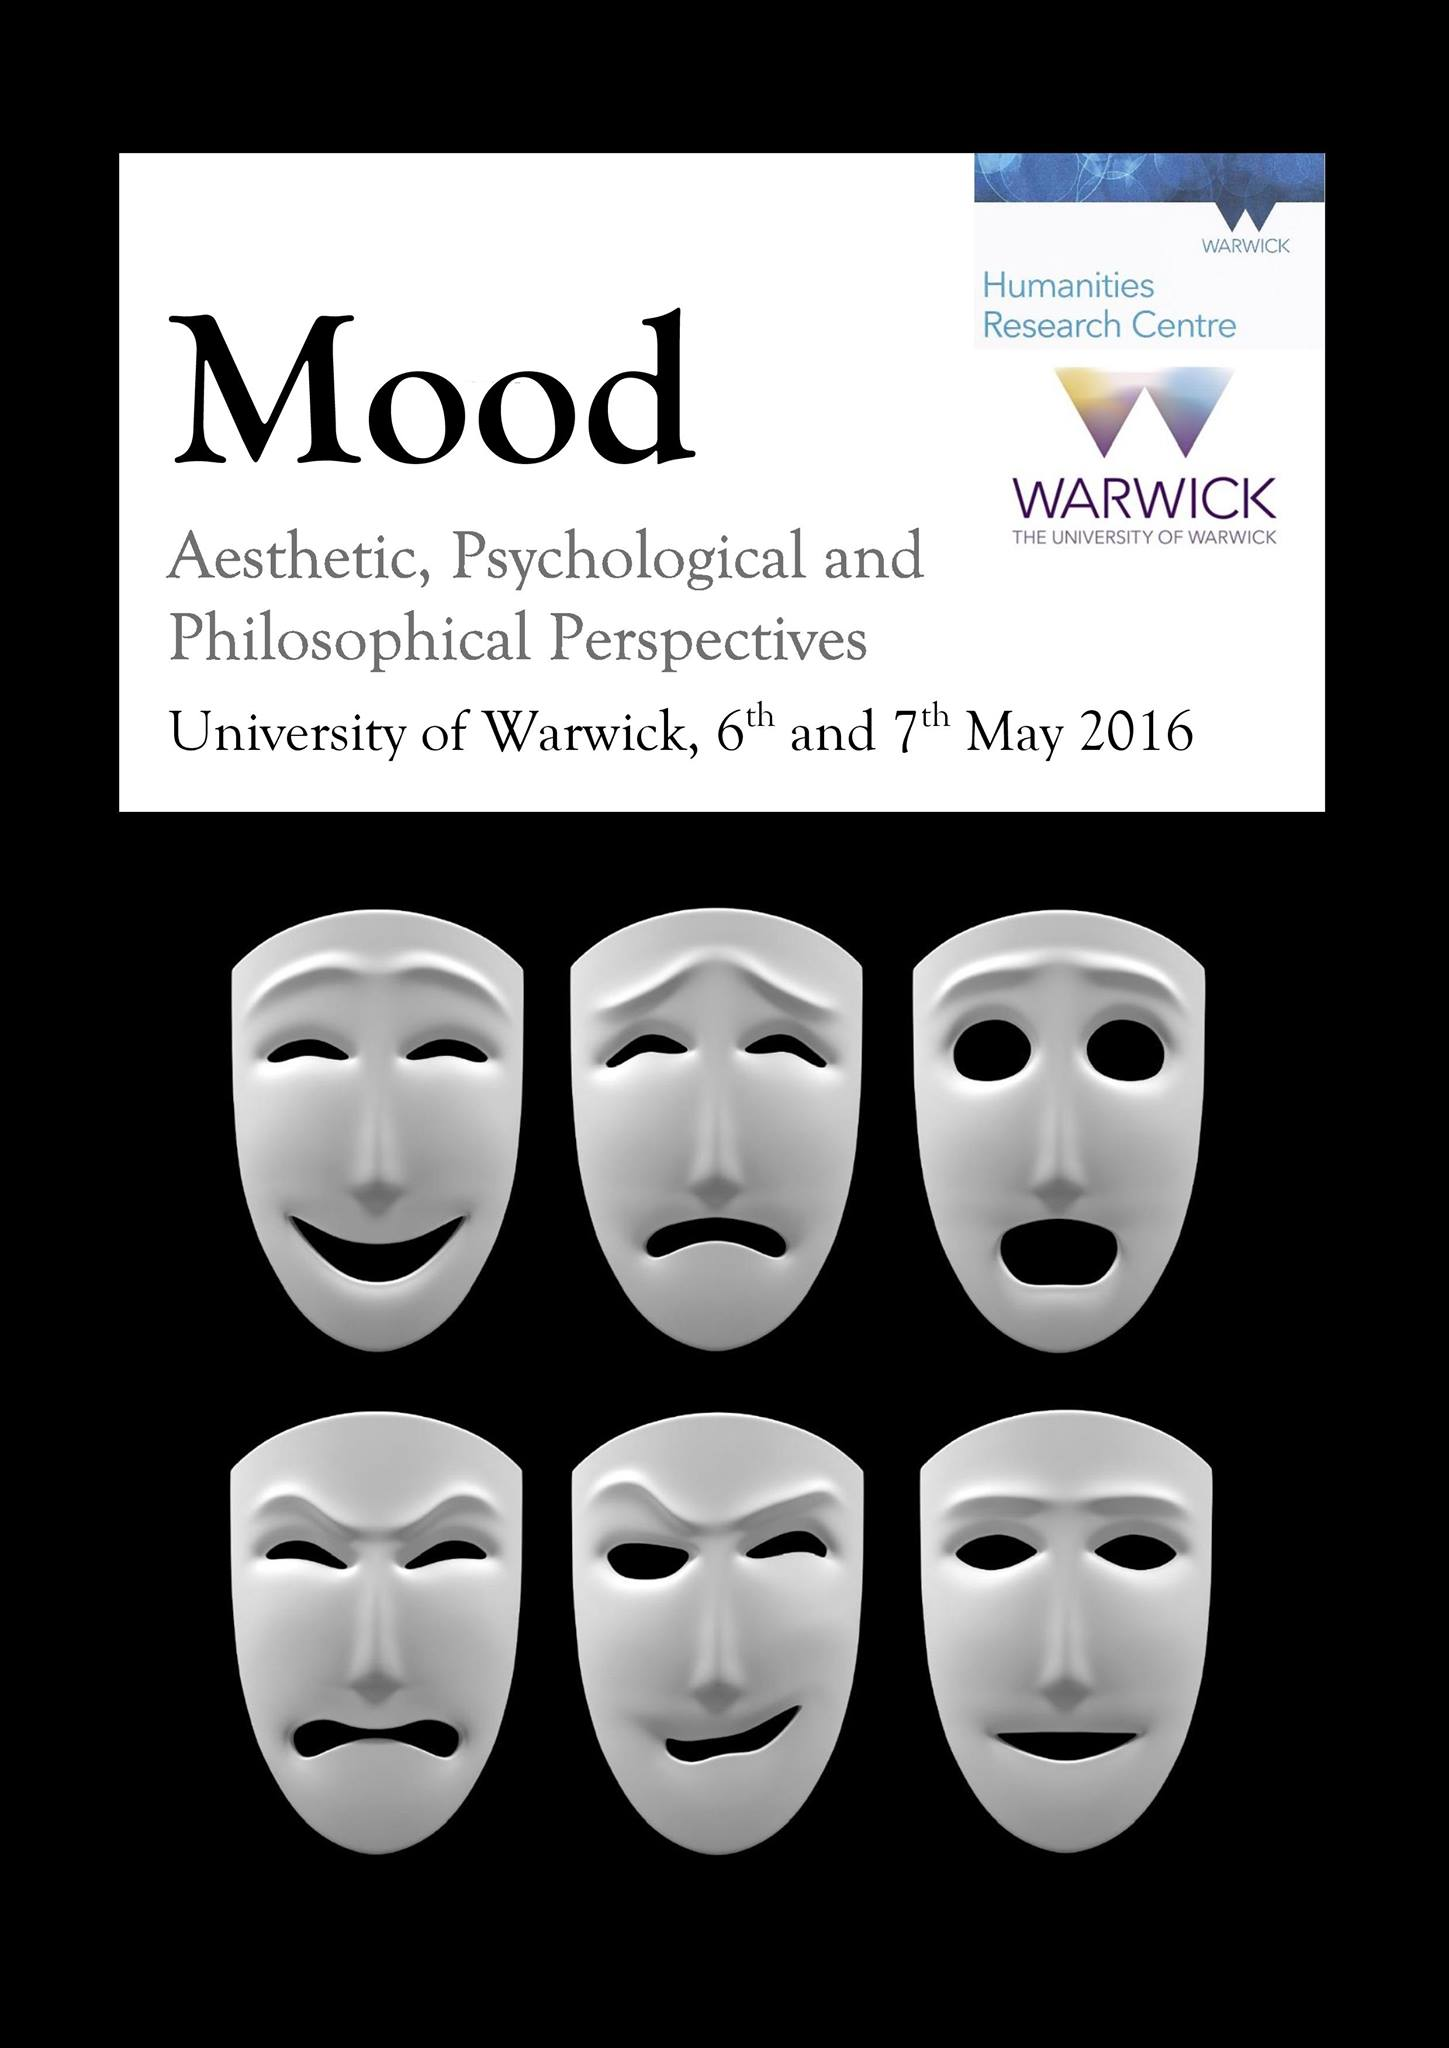 Book cover showing masks